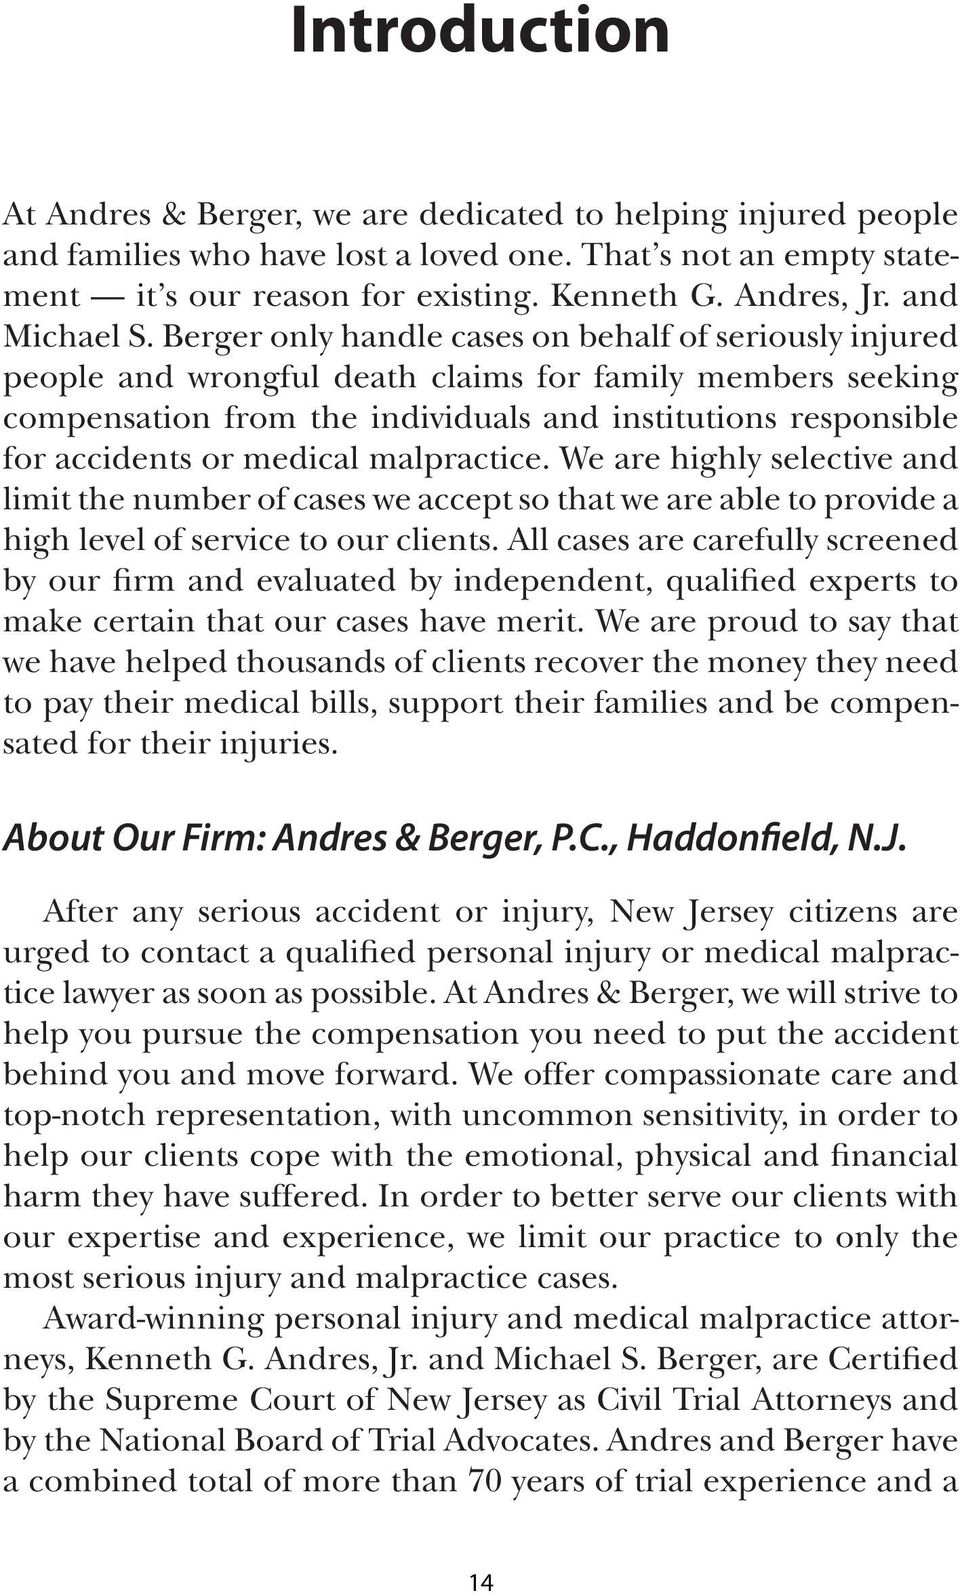 Berger only handle cases on behalf of seriously injured people and wrongful death claims for family members seeking compensation from the individuals and institutions responsible for accidents or